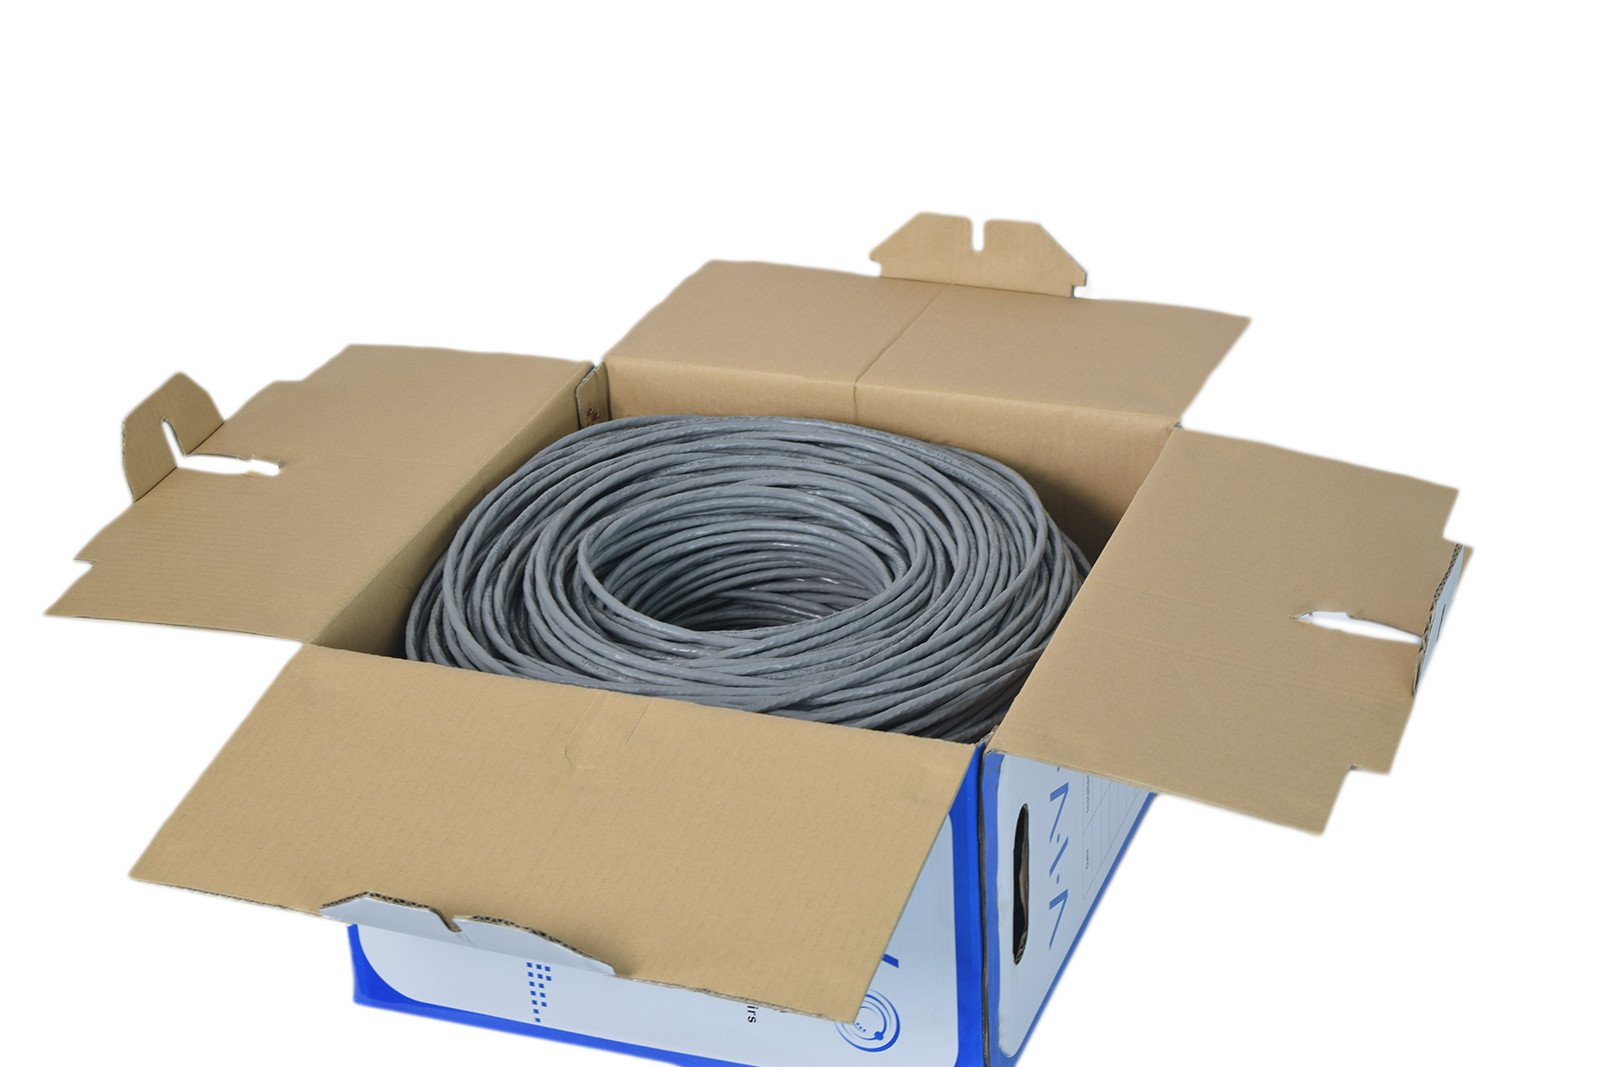 New Full Copper 1,000 ft bulk Cat6 Ethernet Cable / Wire UTP Pull Box 1,000ft Cat-6 Grey ~ VIVO (CABLE-V009) by VIVO (Image #2)